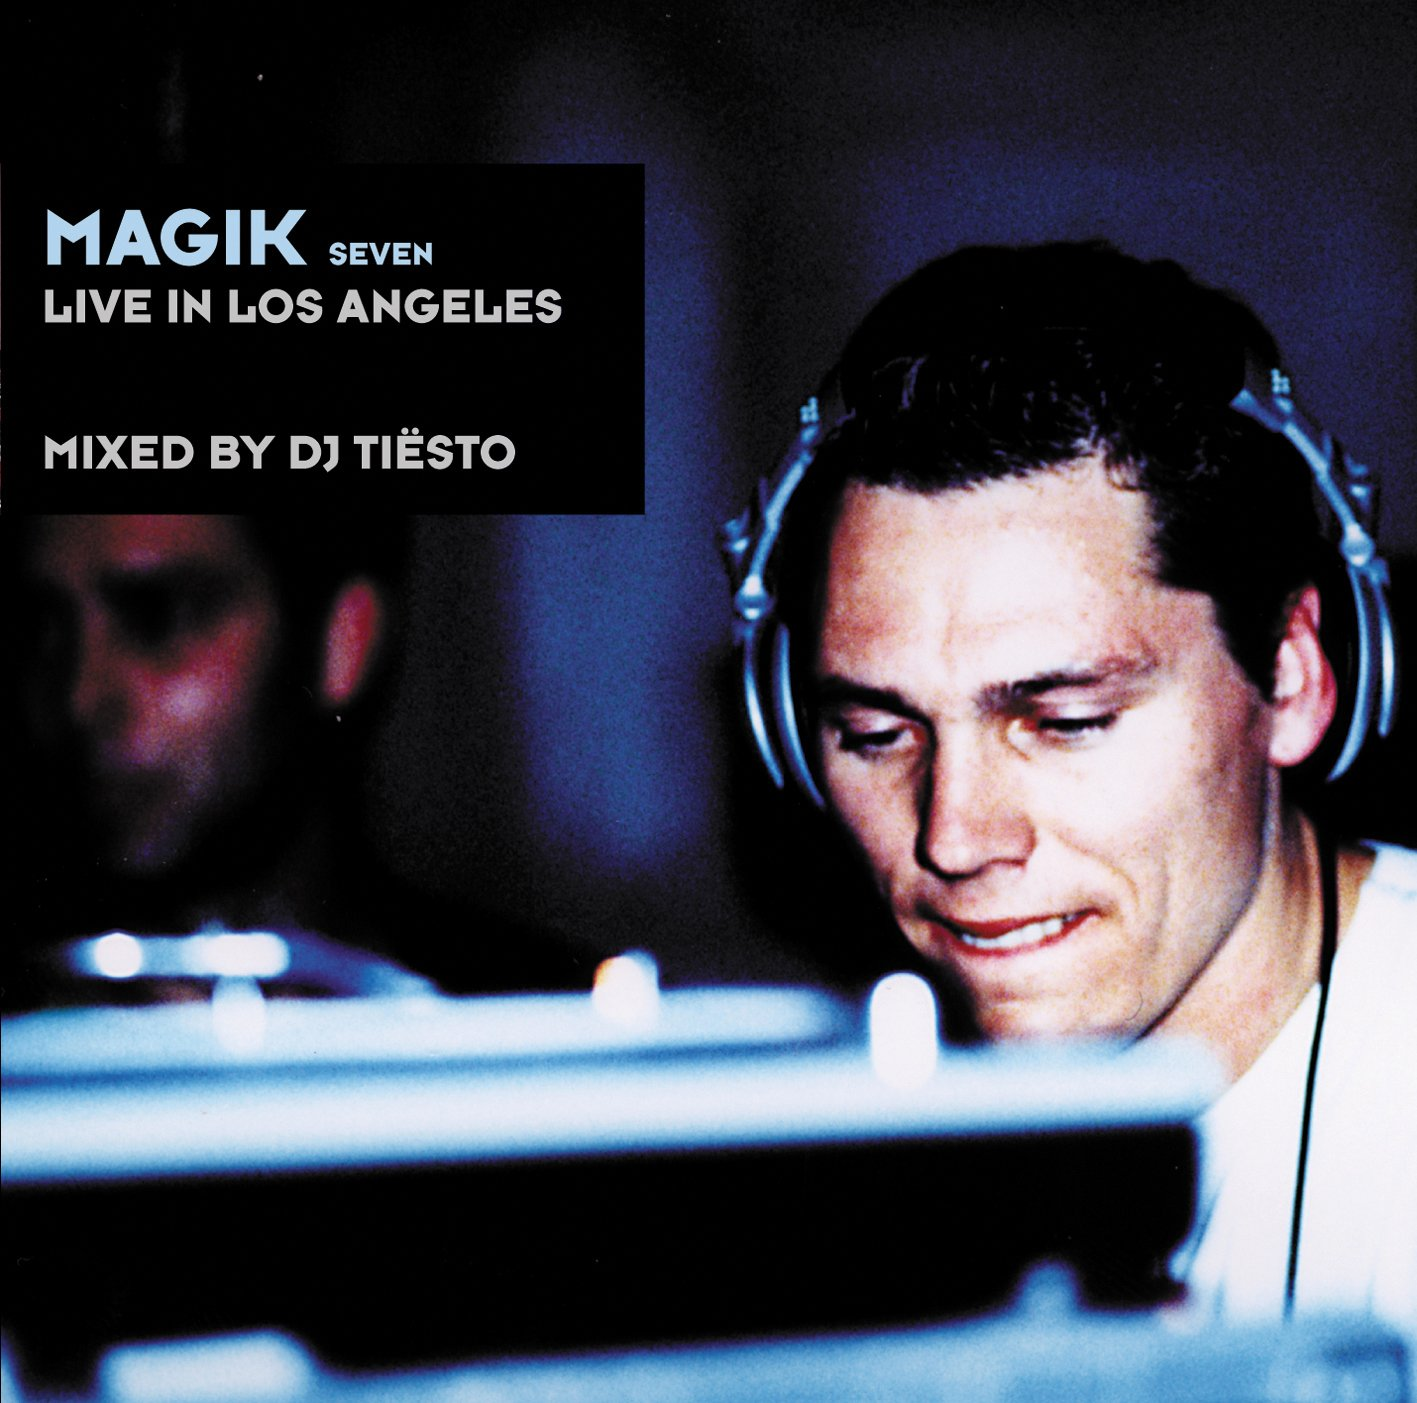 Magik 7: Live In Los Angeles by Black Hole Recordings